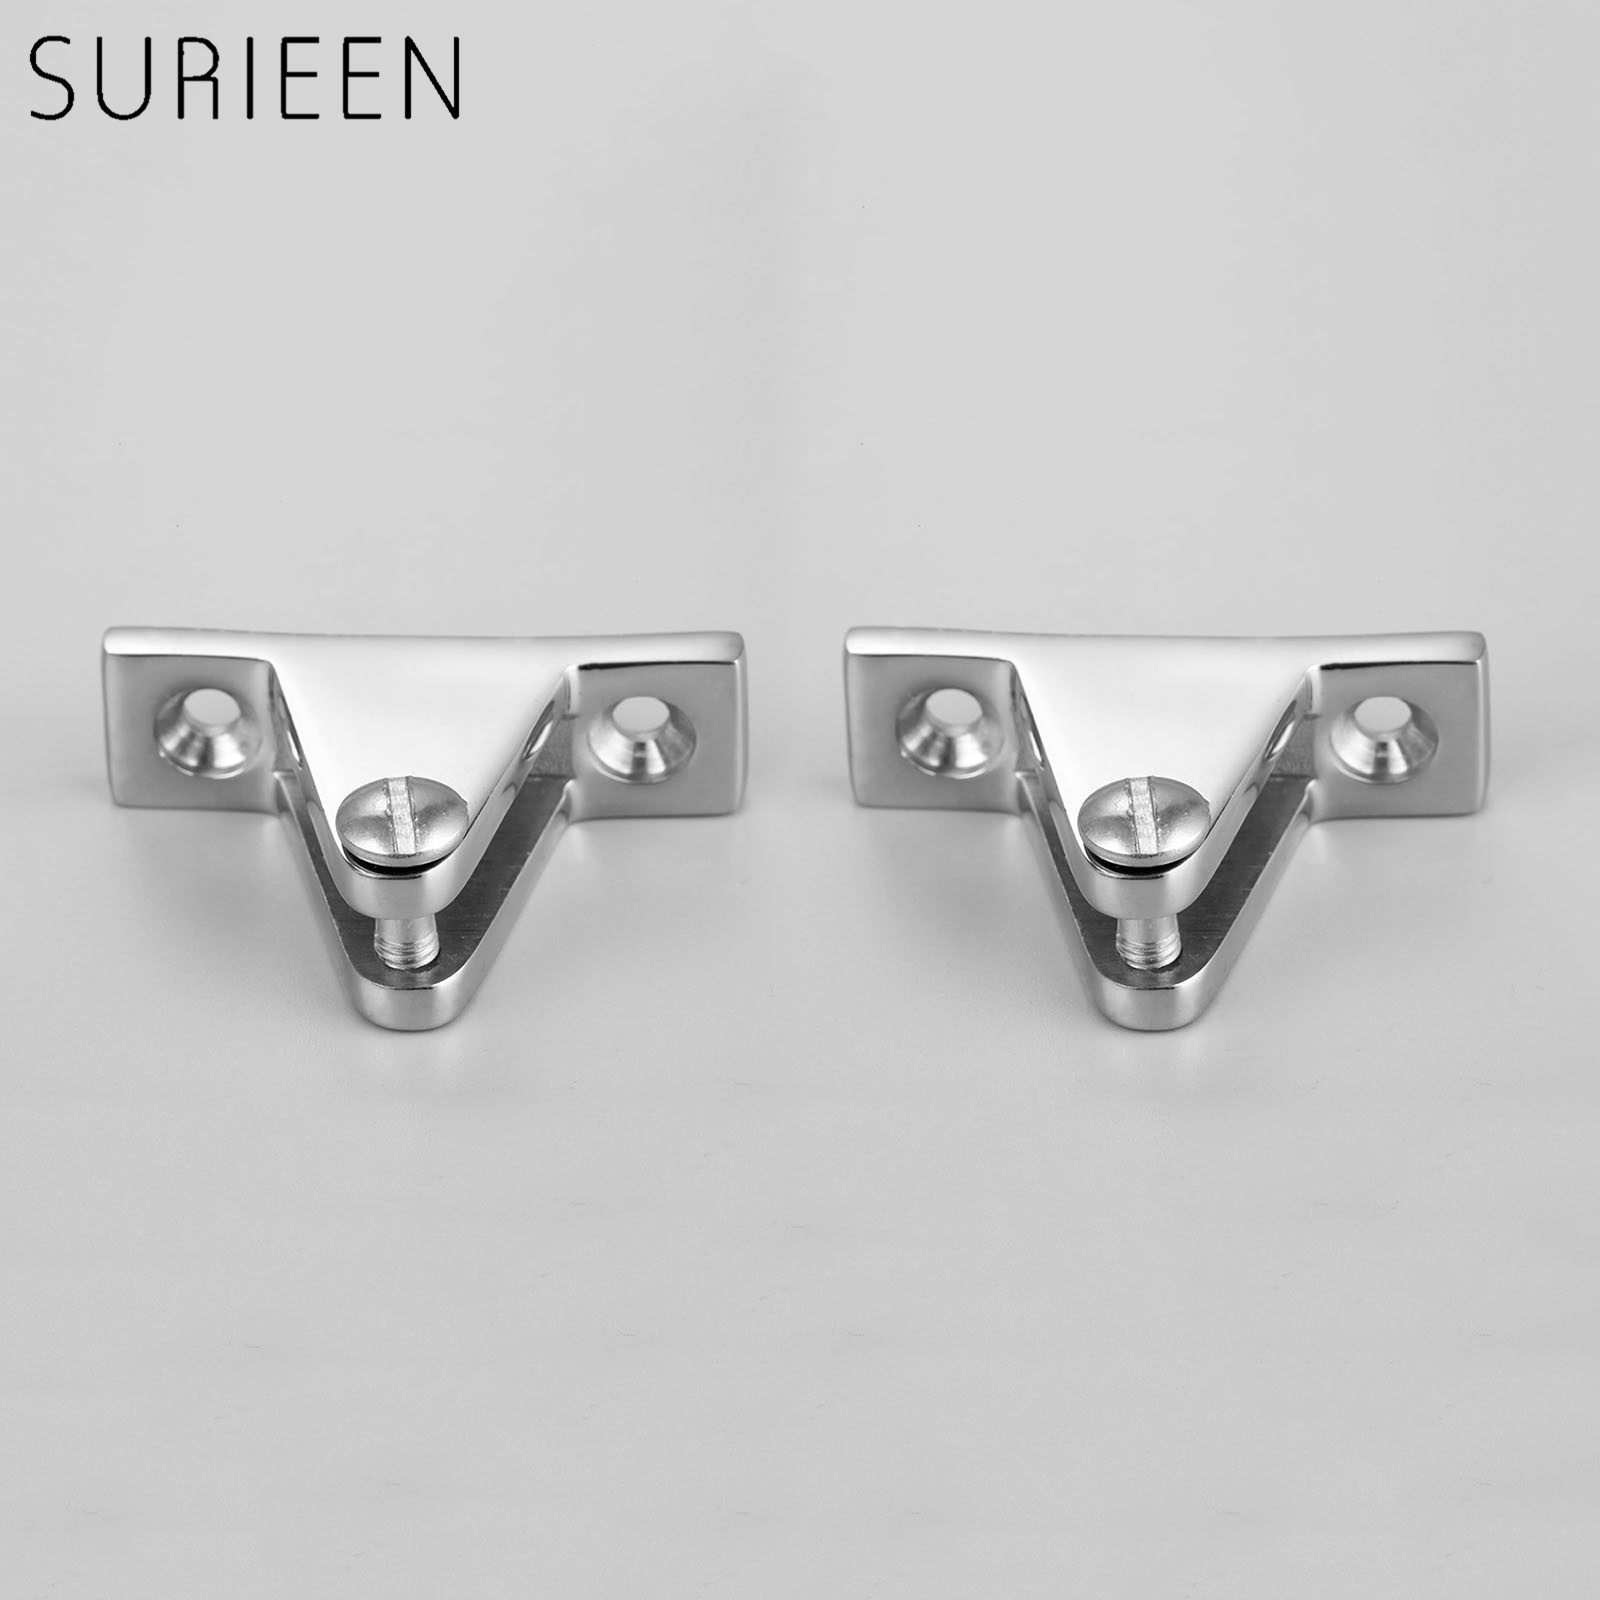 2Pcs Silver Marine Boat Cover Canopy Deck Hinge Top Fitting 90 Degree Pin Stainless Steel Hardware Hot Boat Accessories Marine